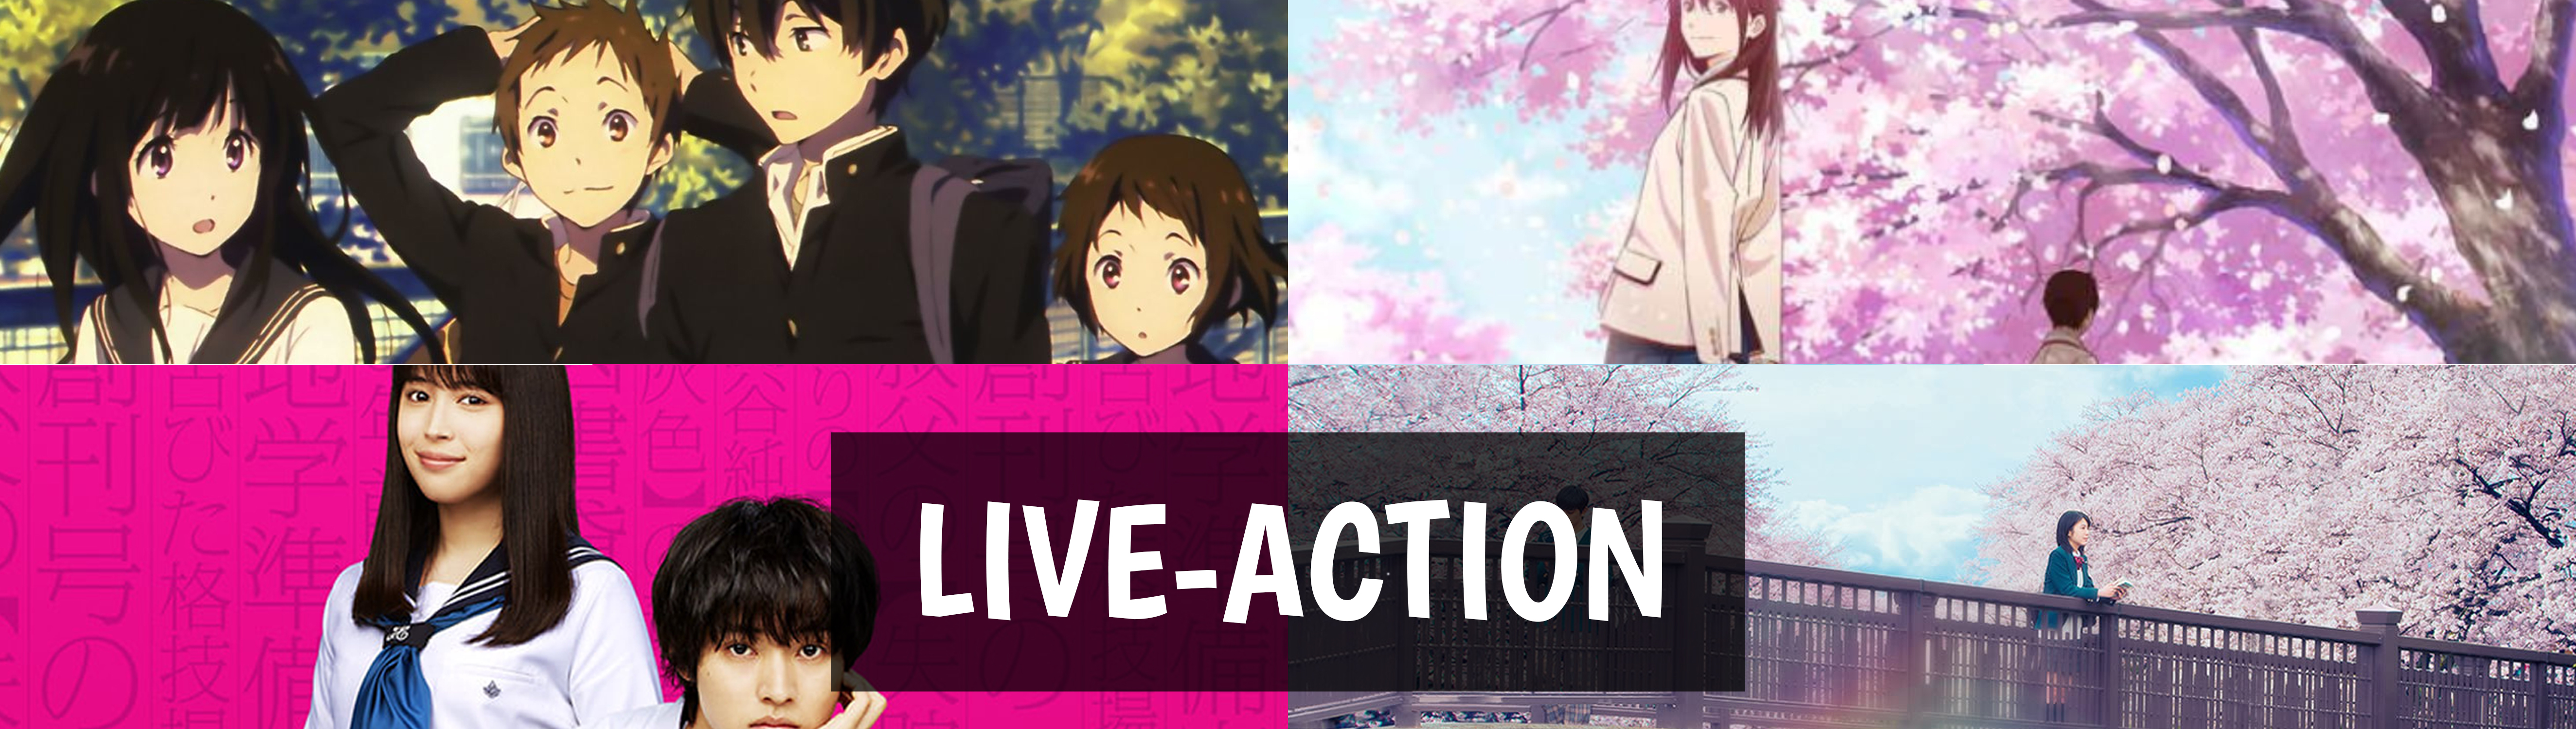 Live Action